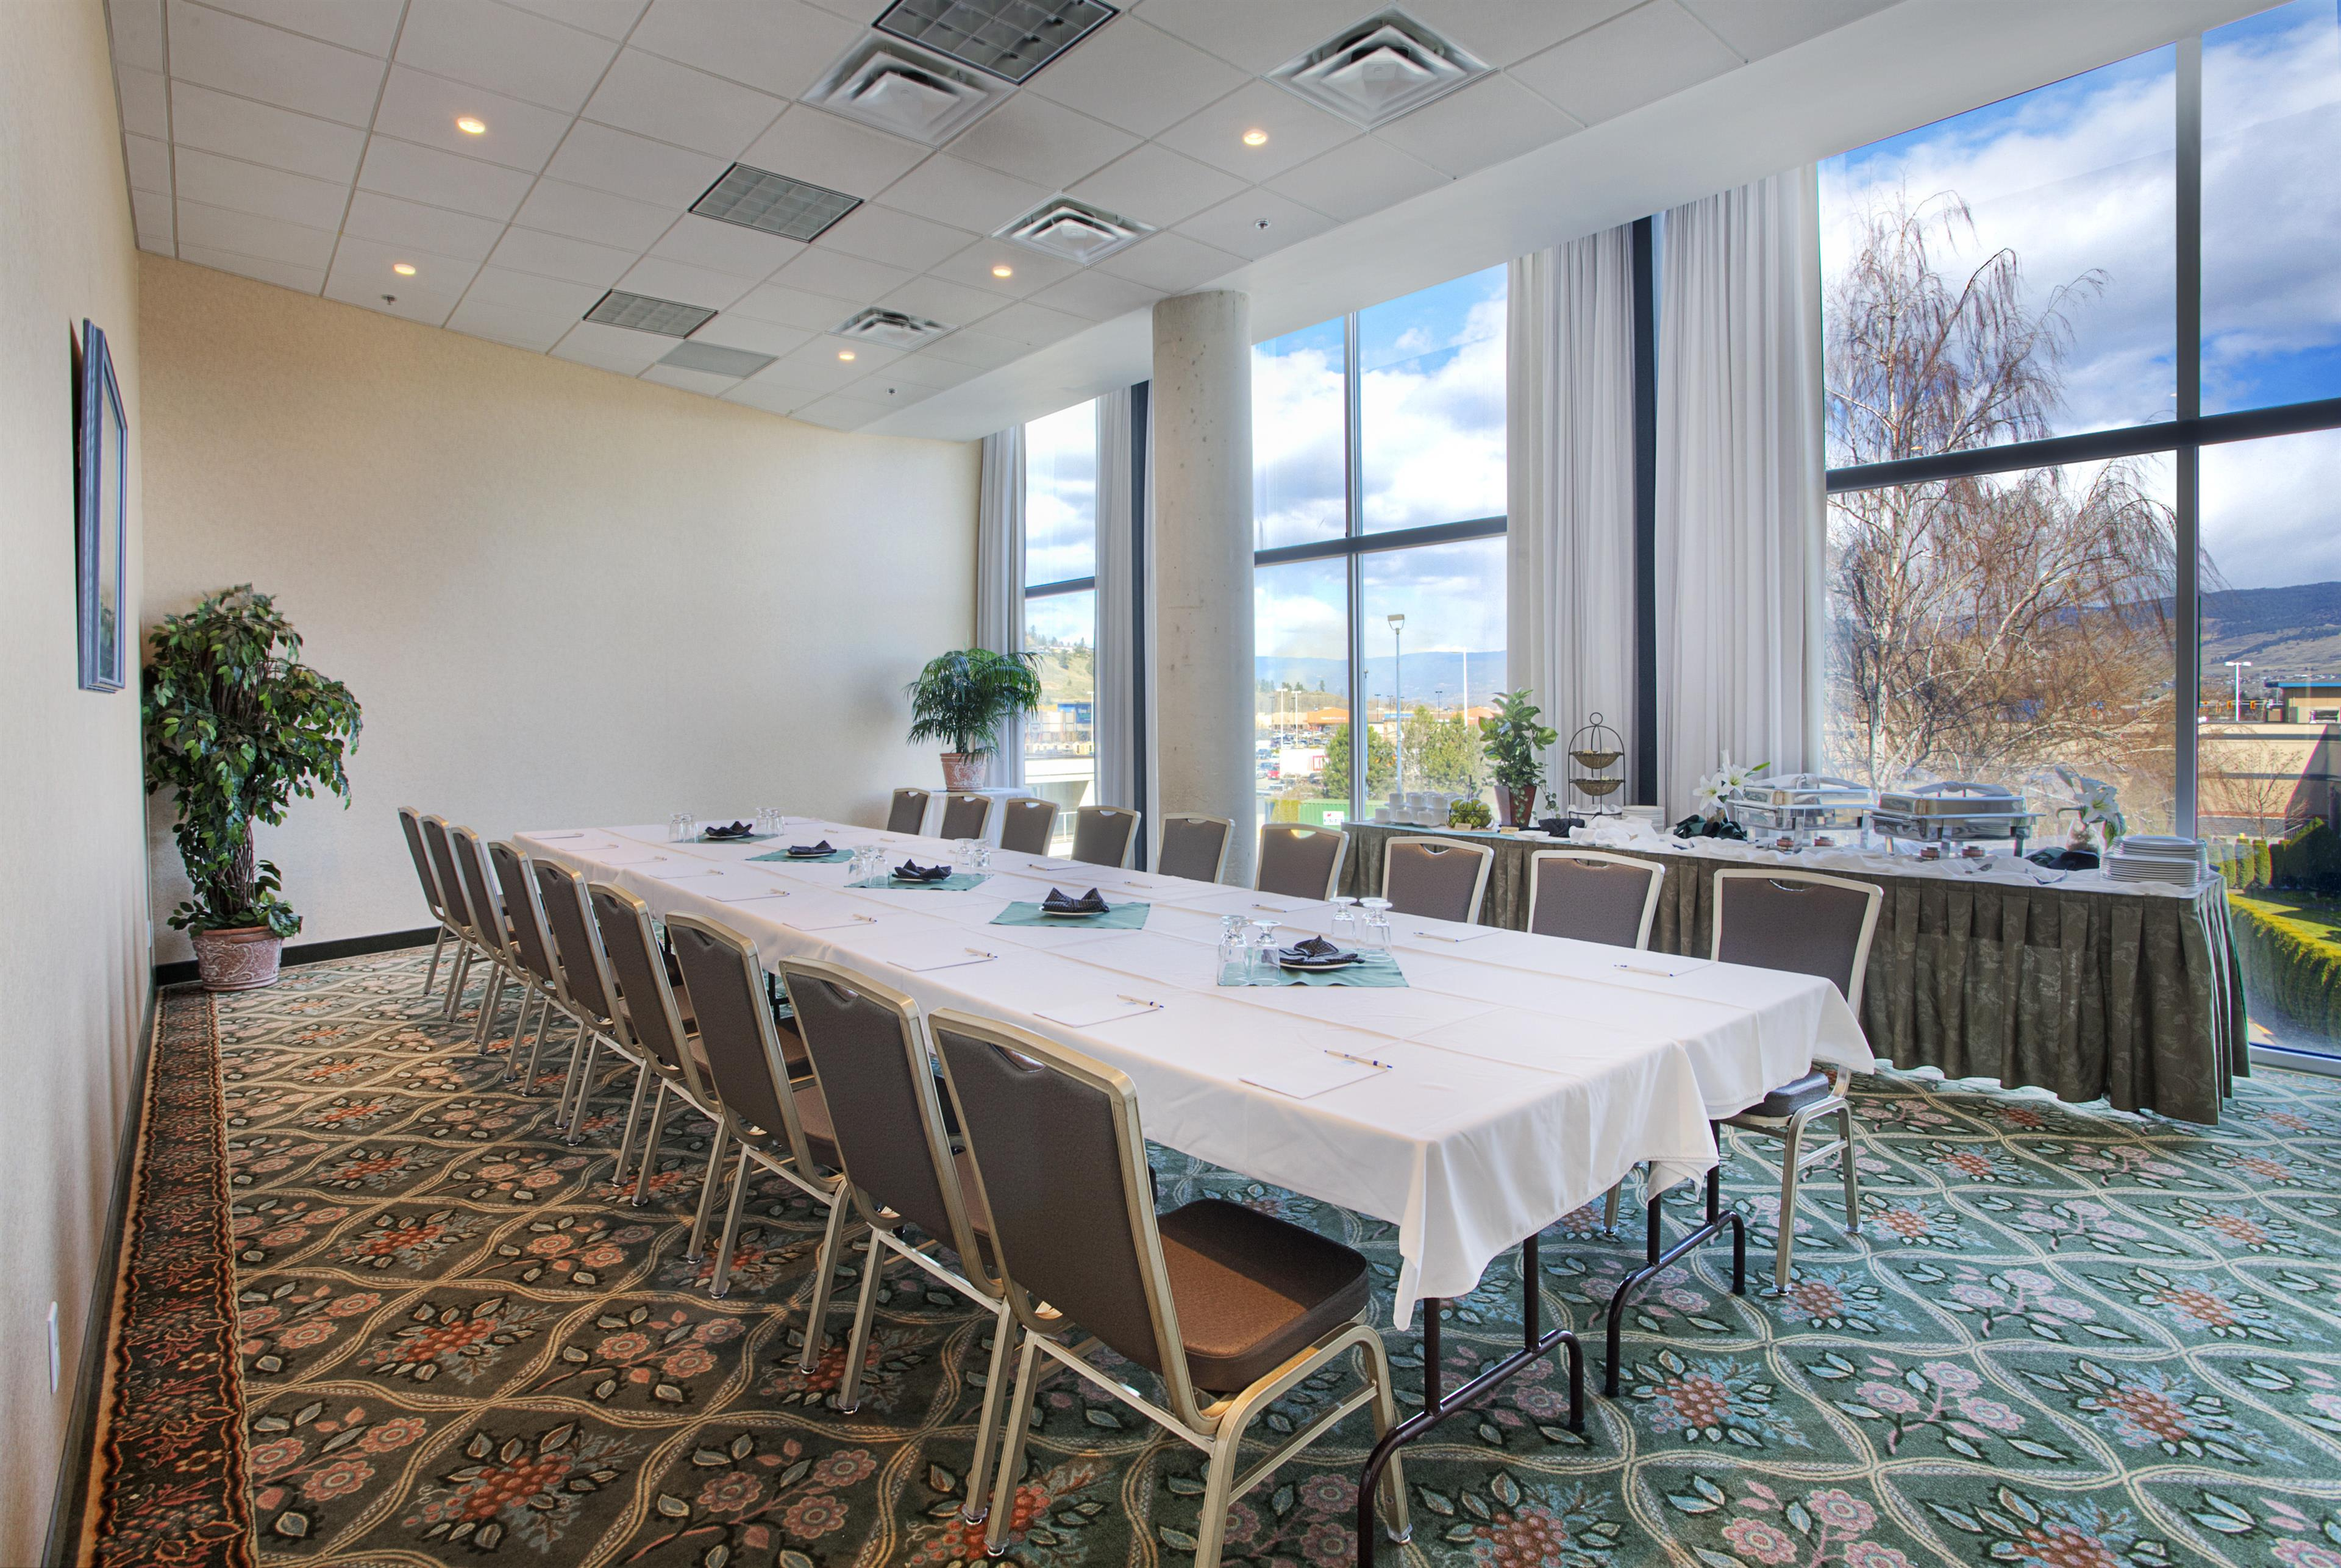 Best Western Plus Kelowna Hotel & Suites in Kelowna: Meeting or Banquet Room